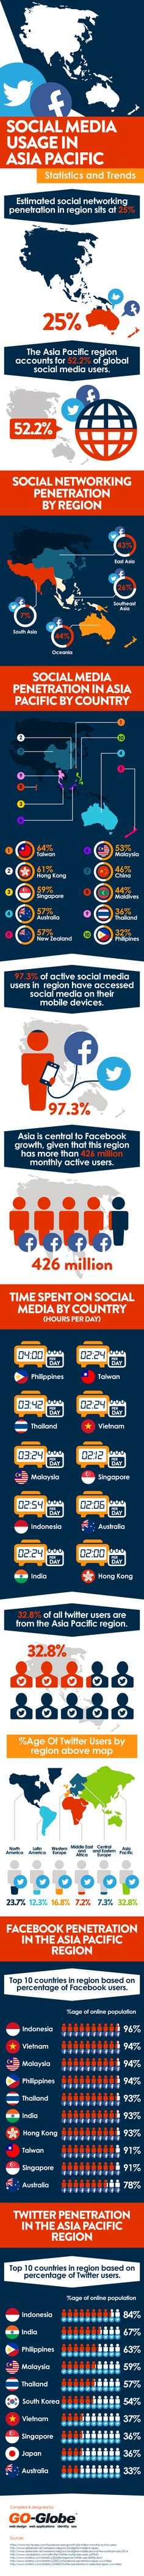 Social media usage in Asia Pacific Statistics and Trends #infographic #SocialMedia #Trends #Stats #Asia